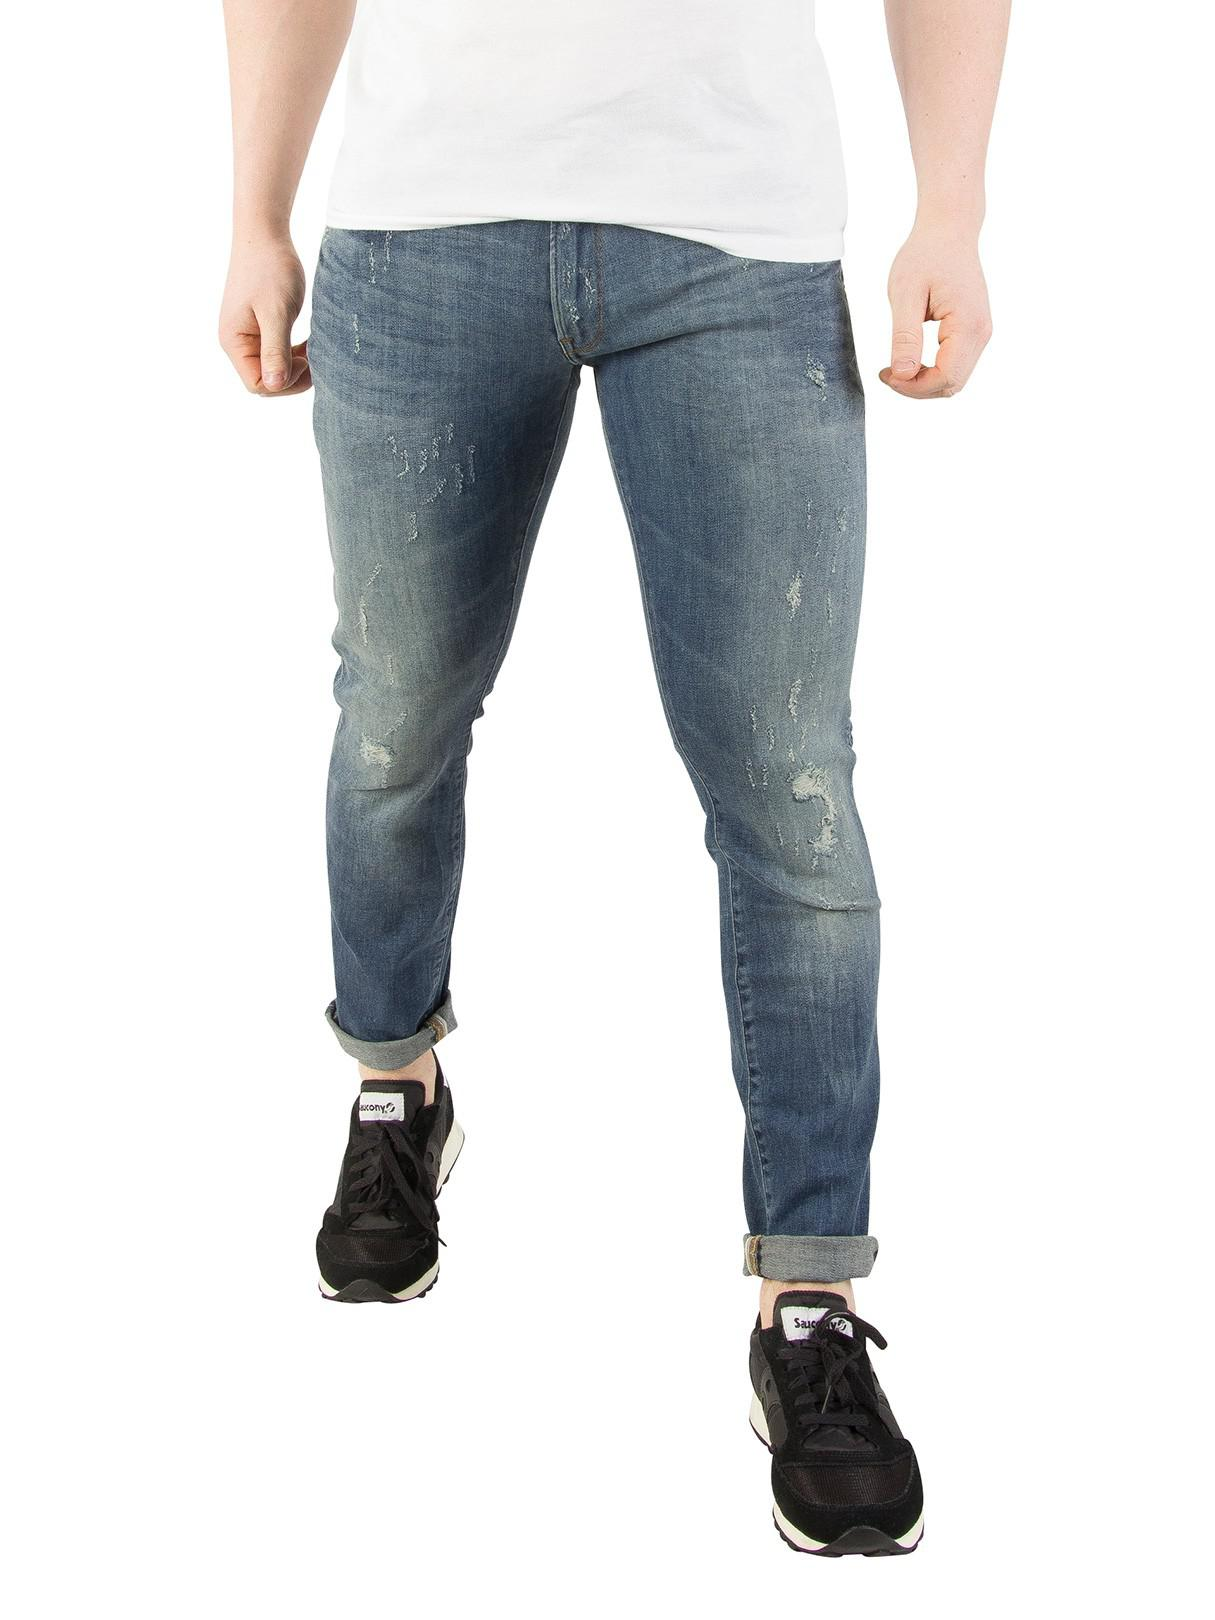 G-Star RAW. Men s Blue Vintage Medium Aged 3301 Deconstructed Super Slim  Jeans 632133272834